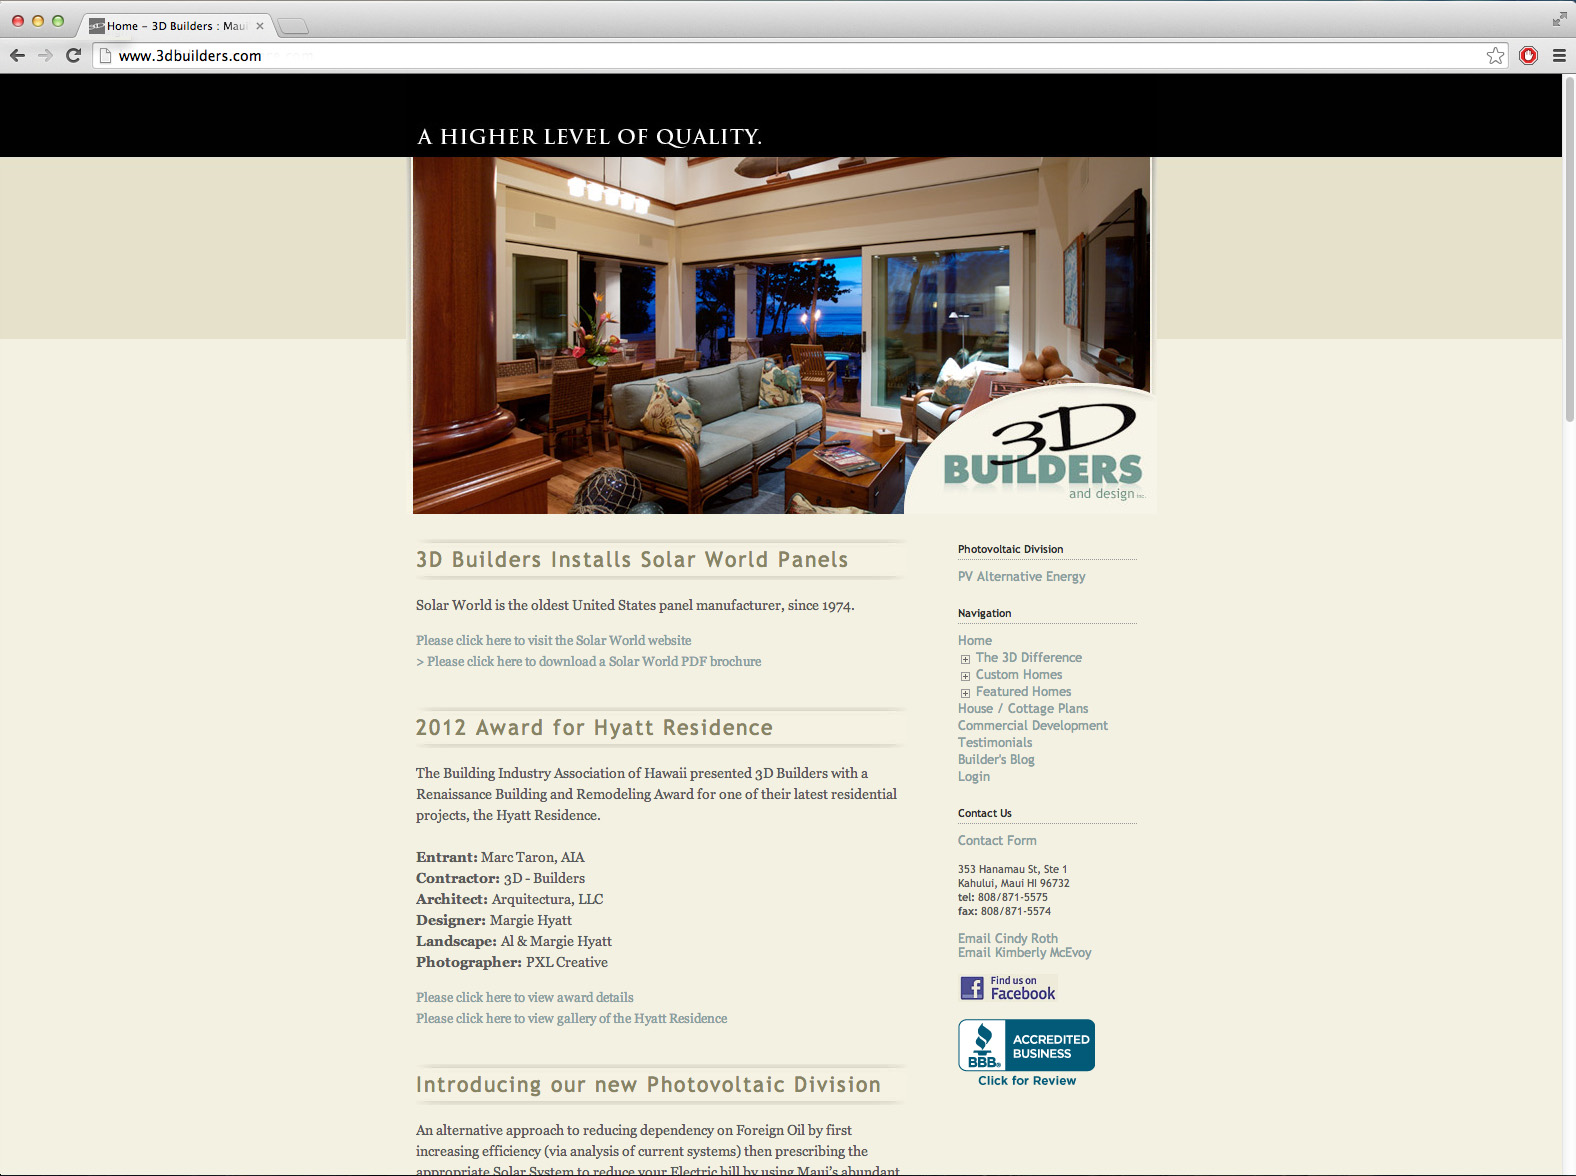 Previous website initially built for 3D builders